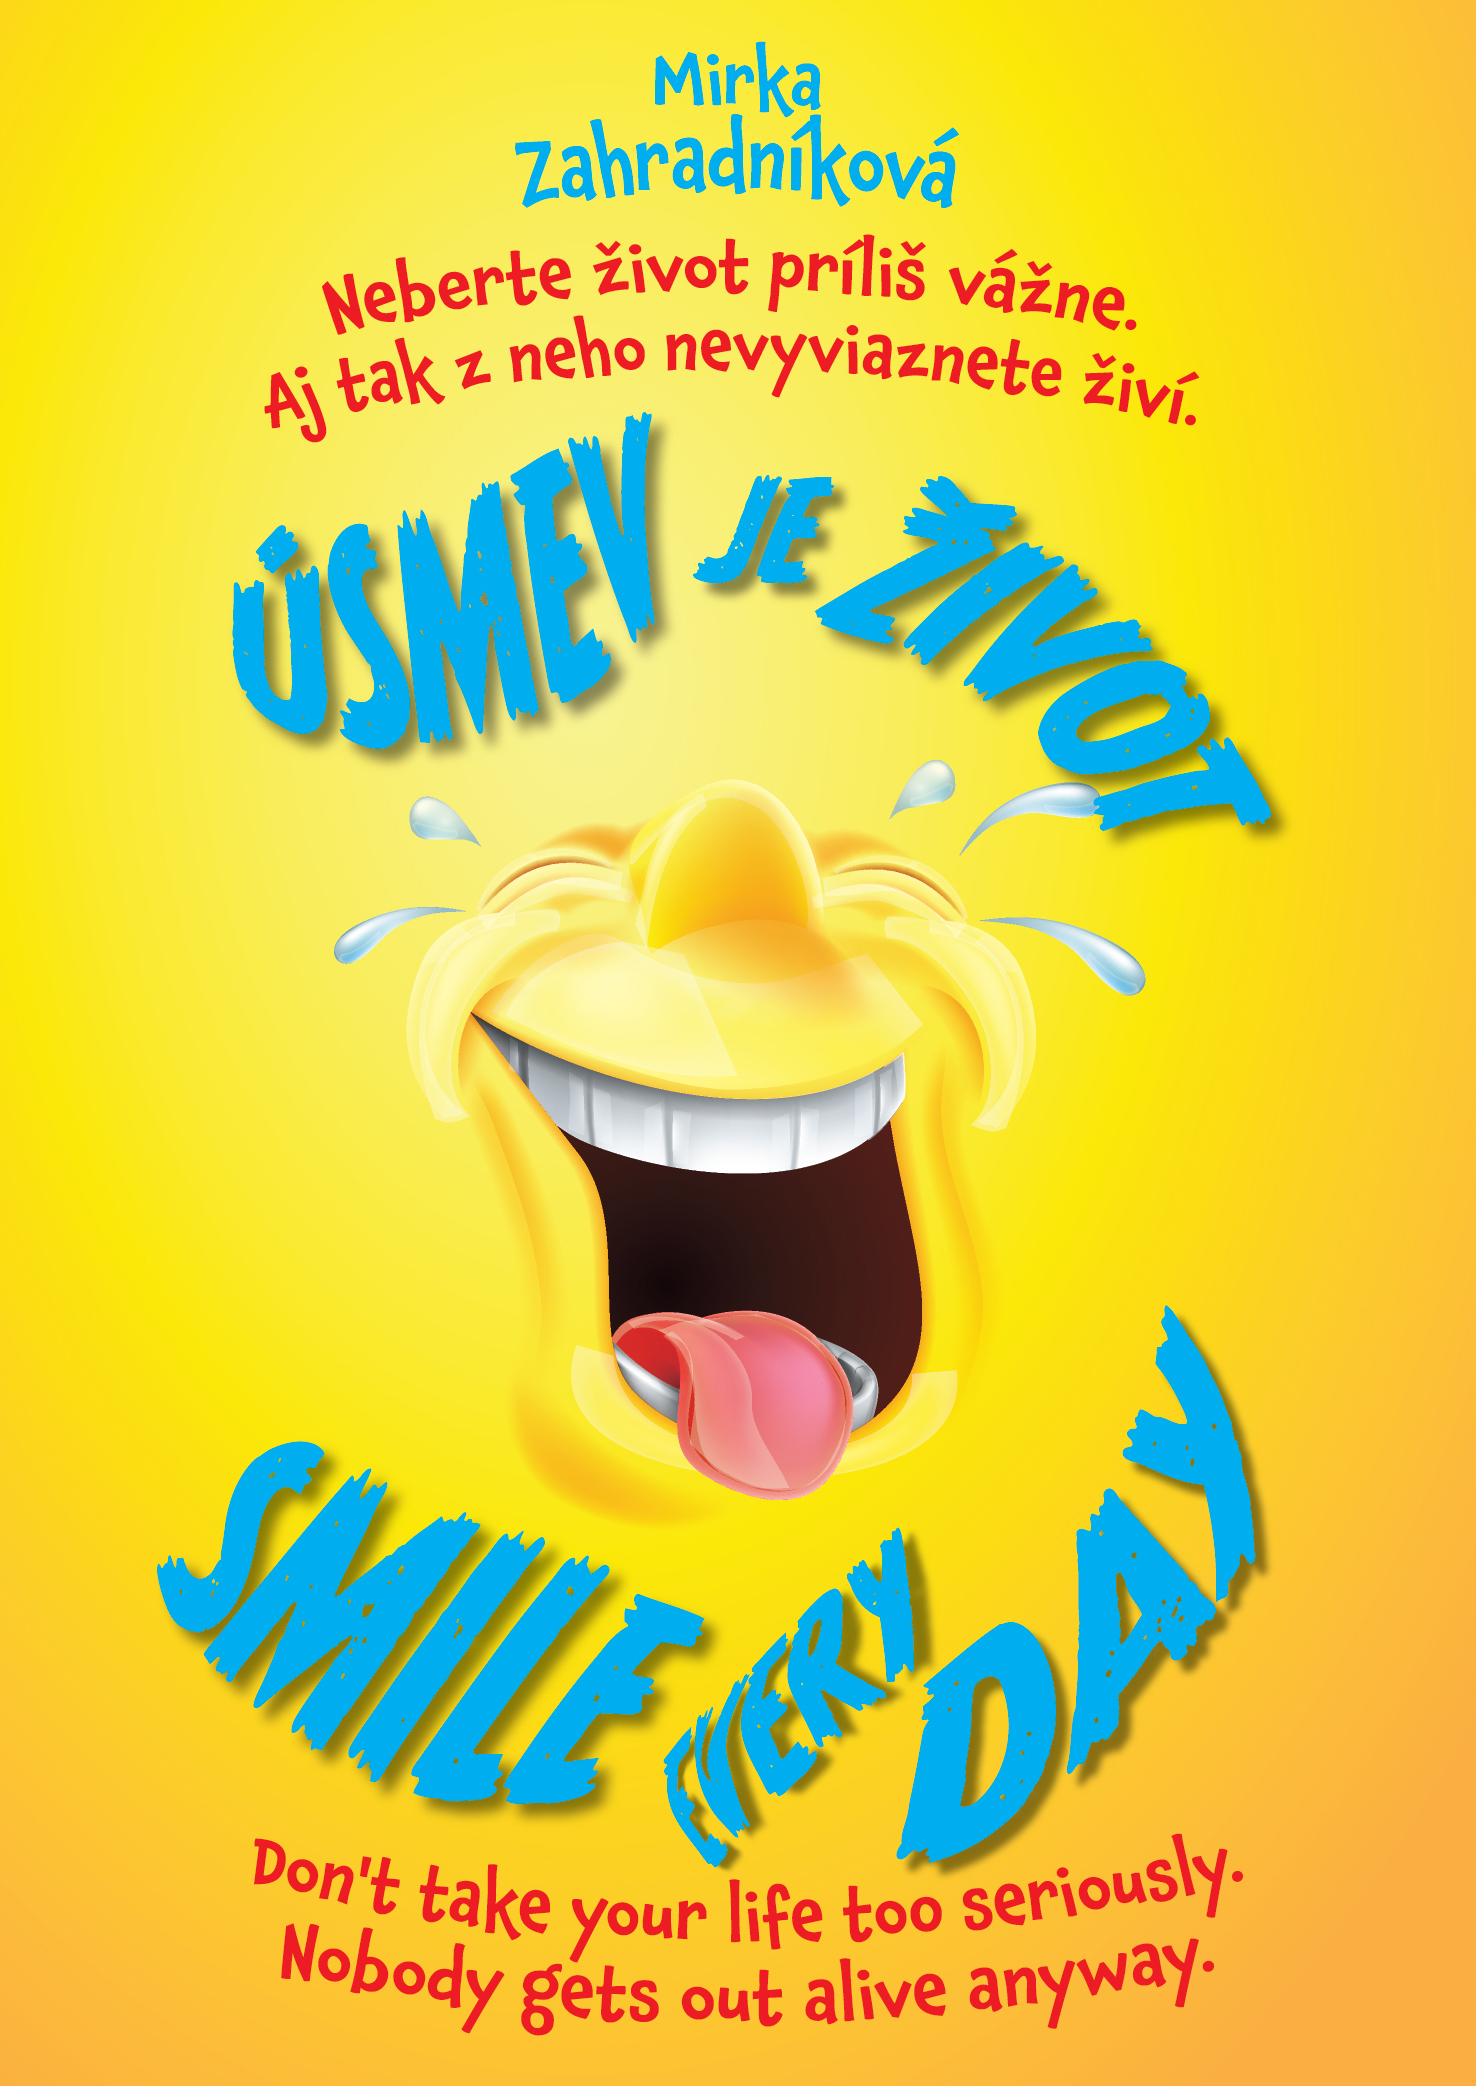 Úsmev je život. Smile every day.